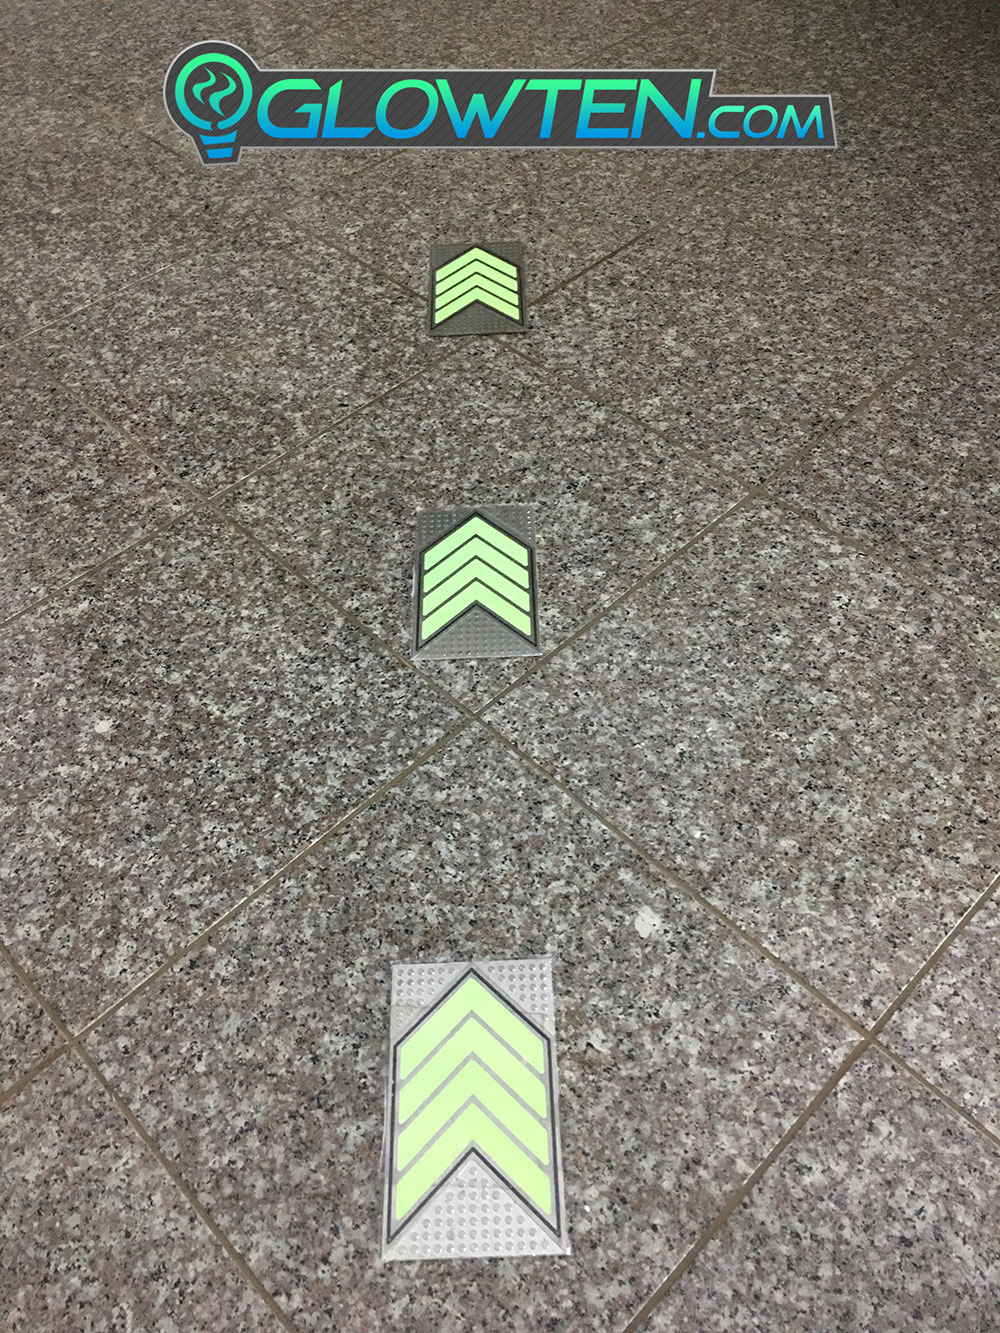 GLOWTEN.com - FOUR QUAD ARROWS Ground Direction Safety Sign Glow in the Dark Stainless Steel Plate With Anti-Slip Function Directional Guide Expose Dimly Lit Areas picture photo cap preview pic 4